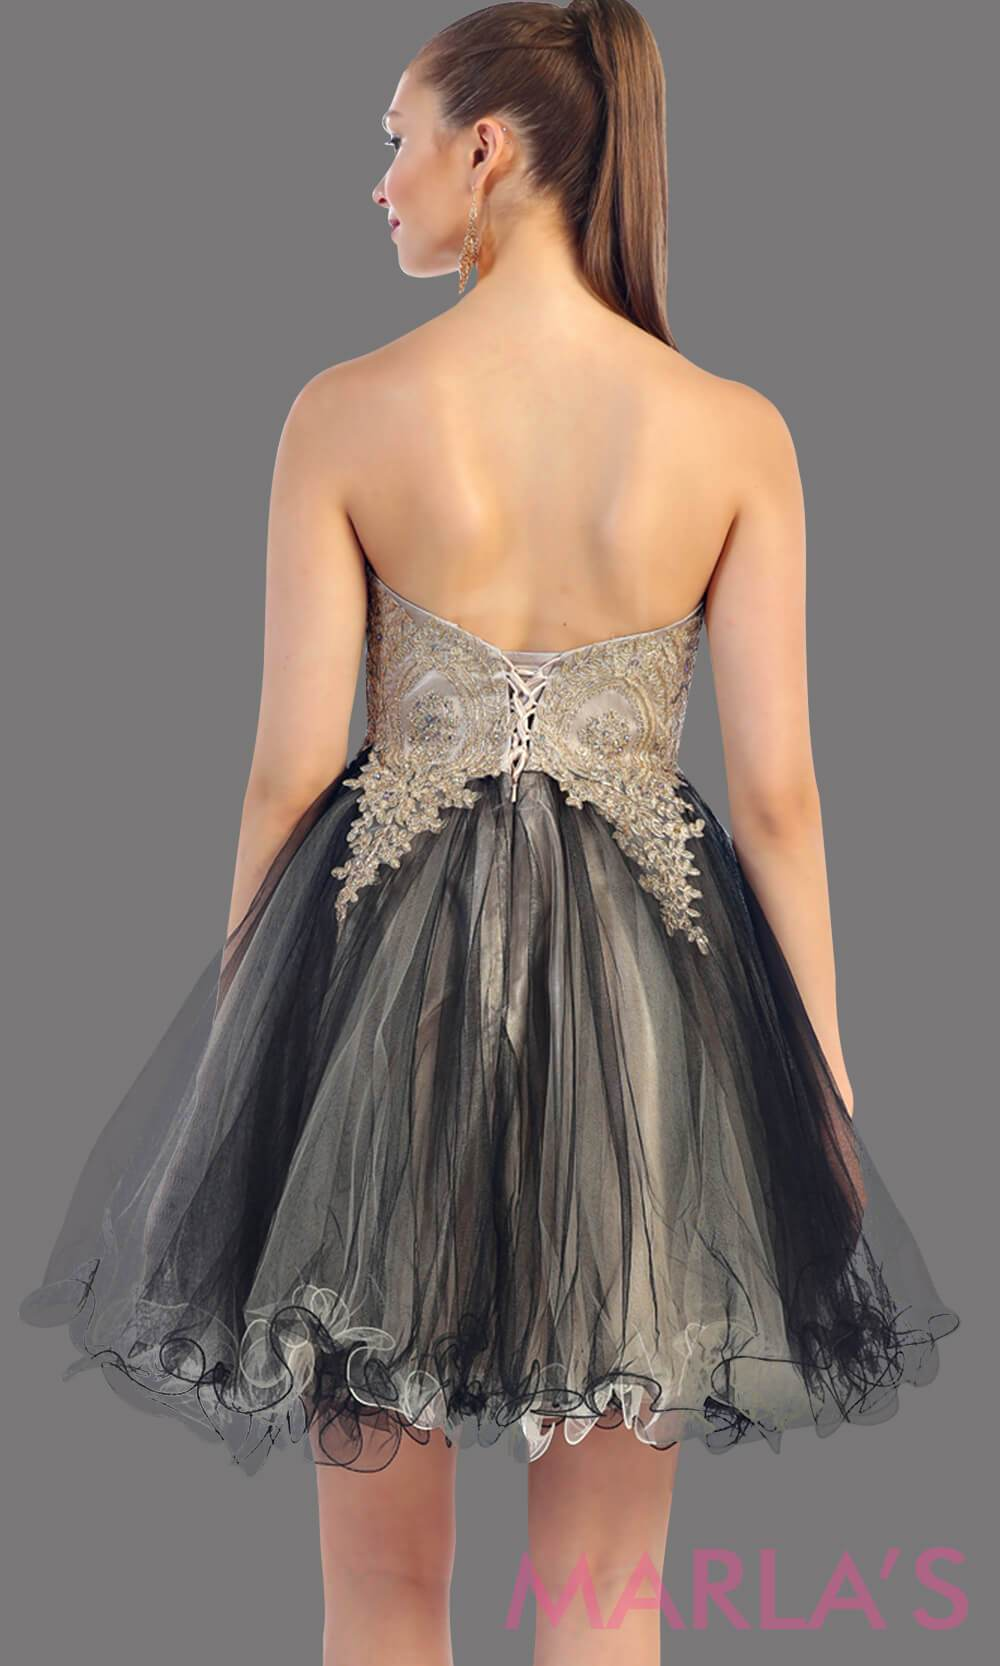 Back of short two tone strapless puffy black dress with a corset back. This is a perfect grade 8 grad dress, black graduation dress, homecoming, semi formal, bridal shower. Available in plus sizes